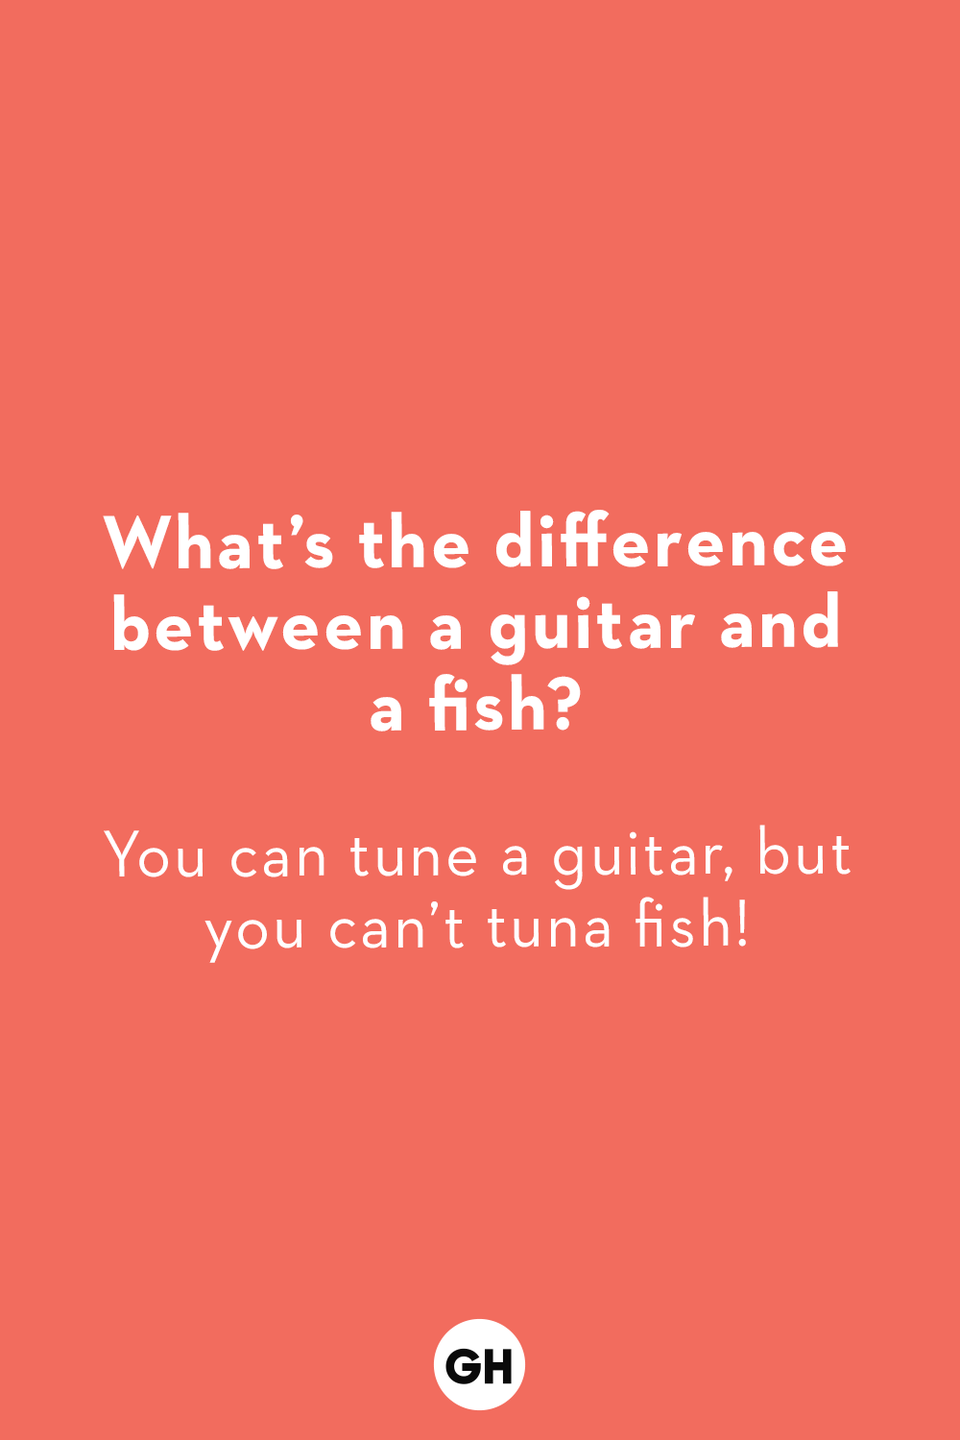 <p>You can tune a guitar, but you can't tuna fish!</p>